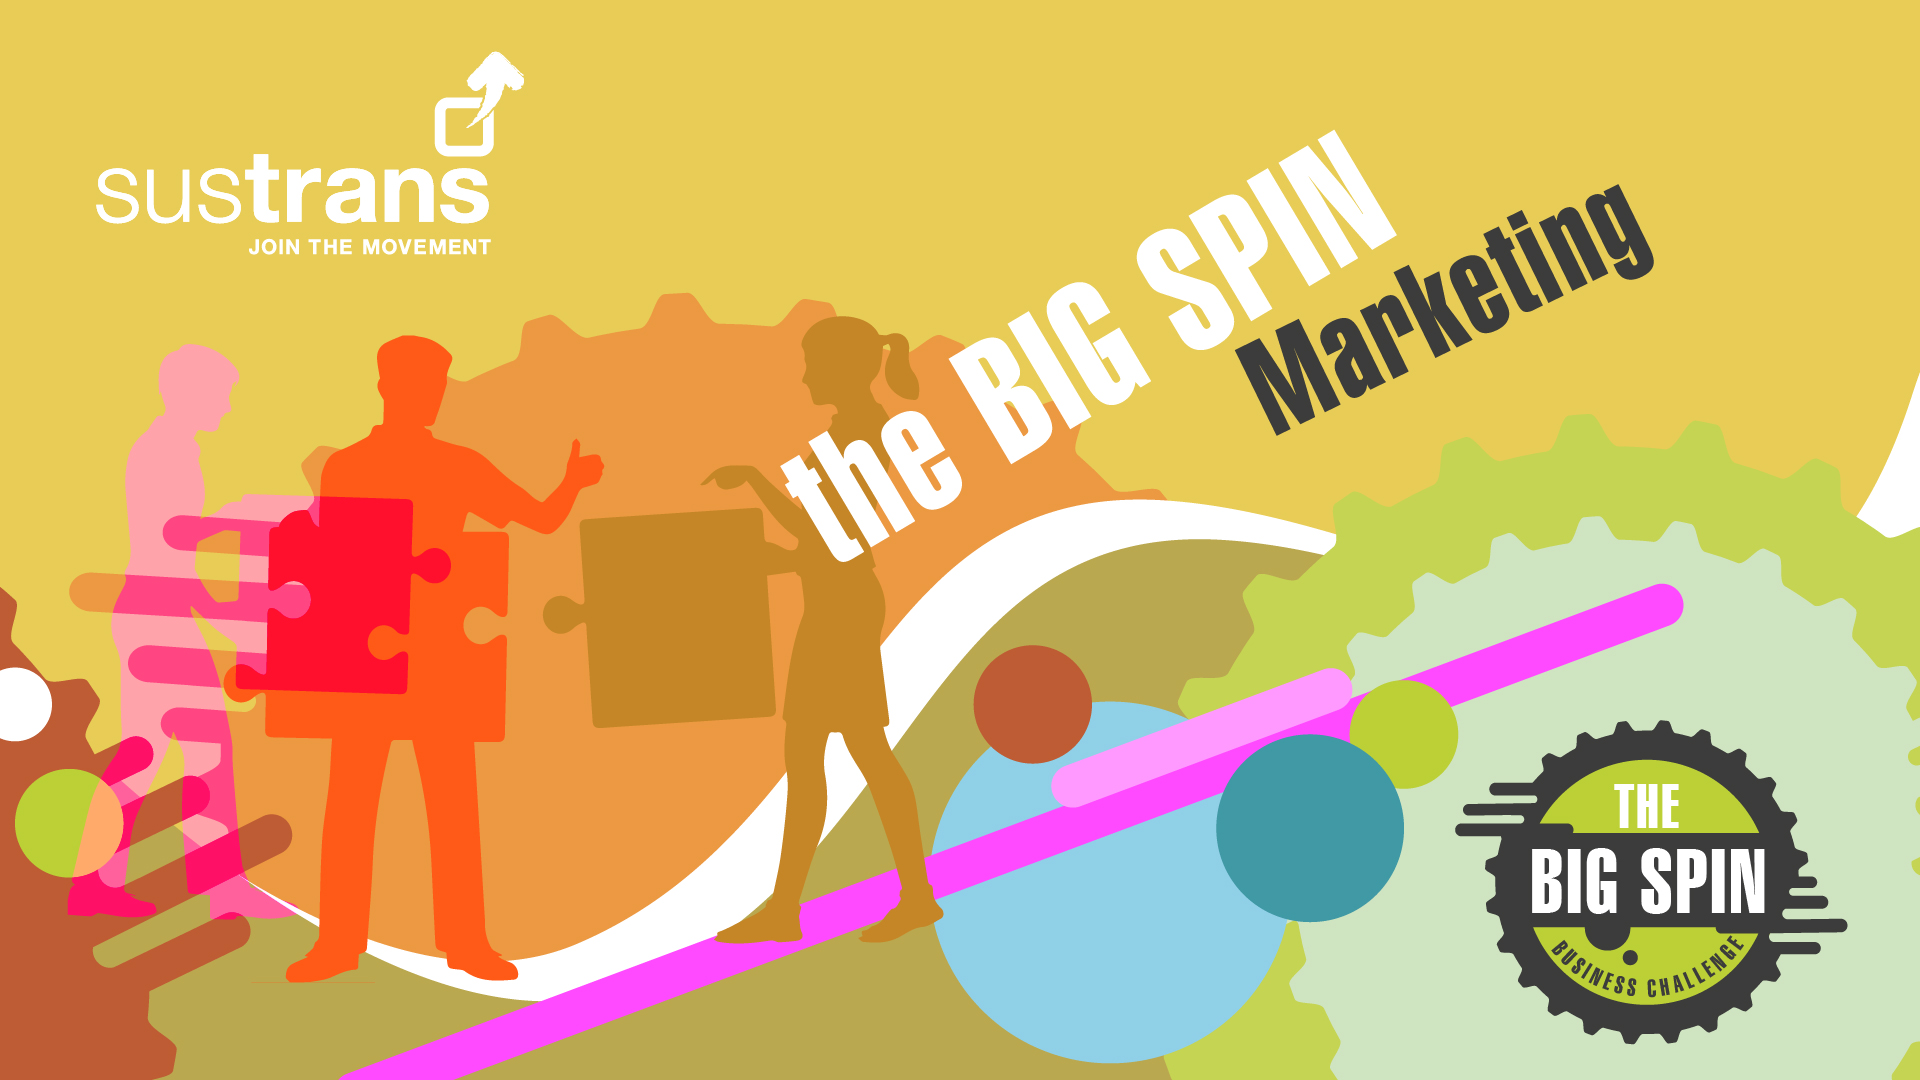 Big Spin Marketing